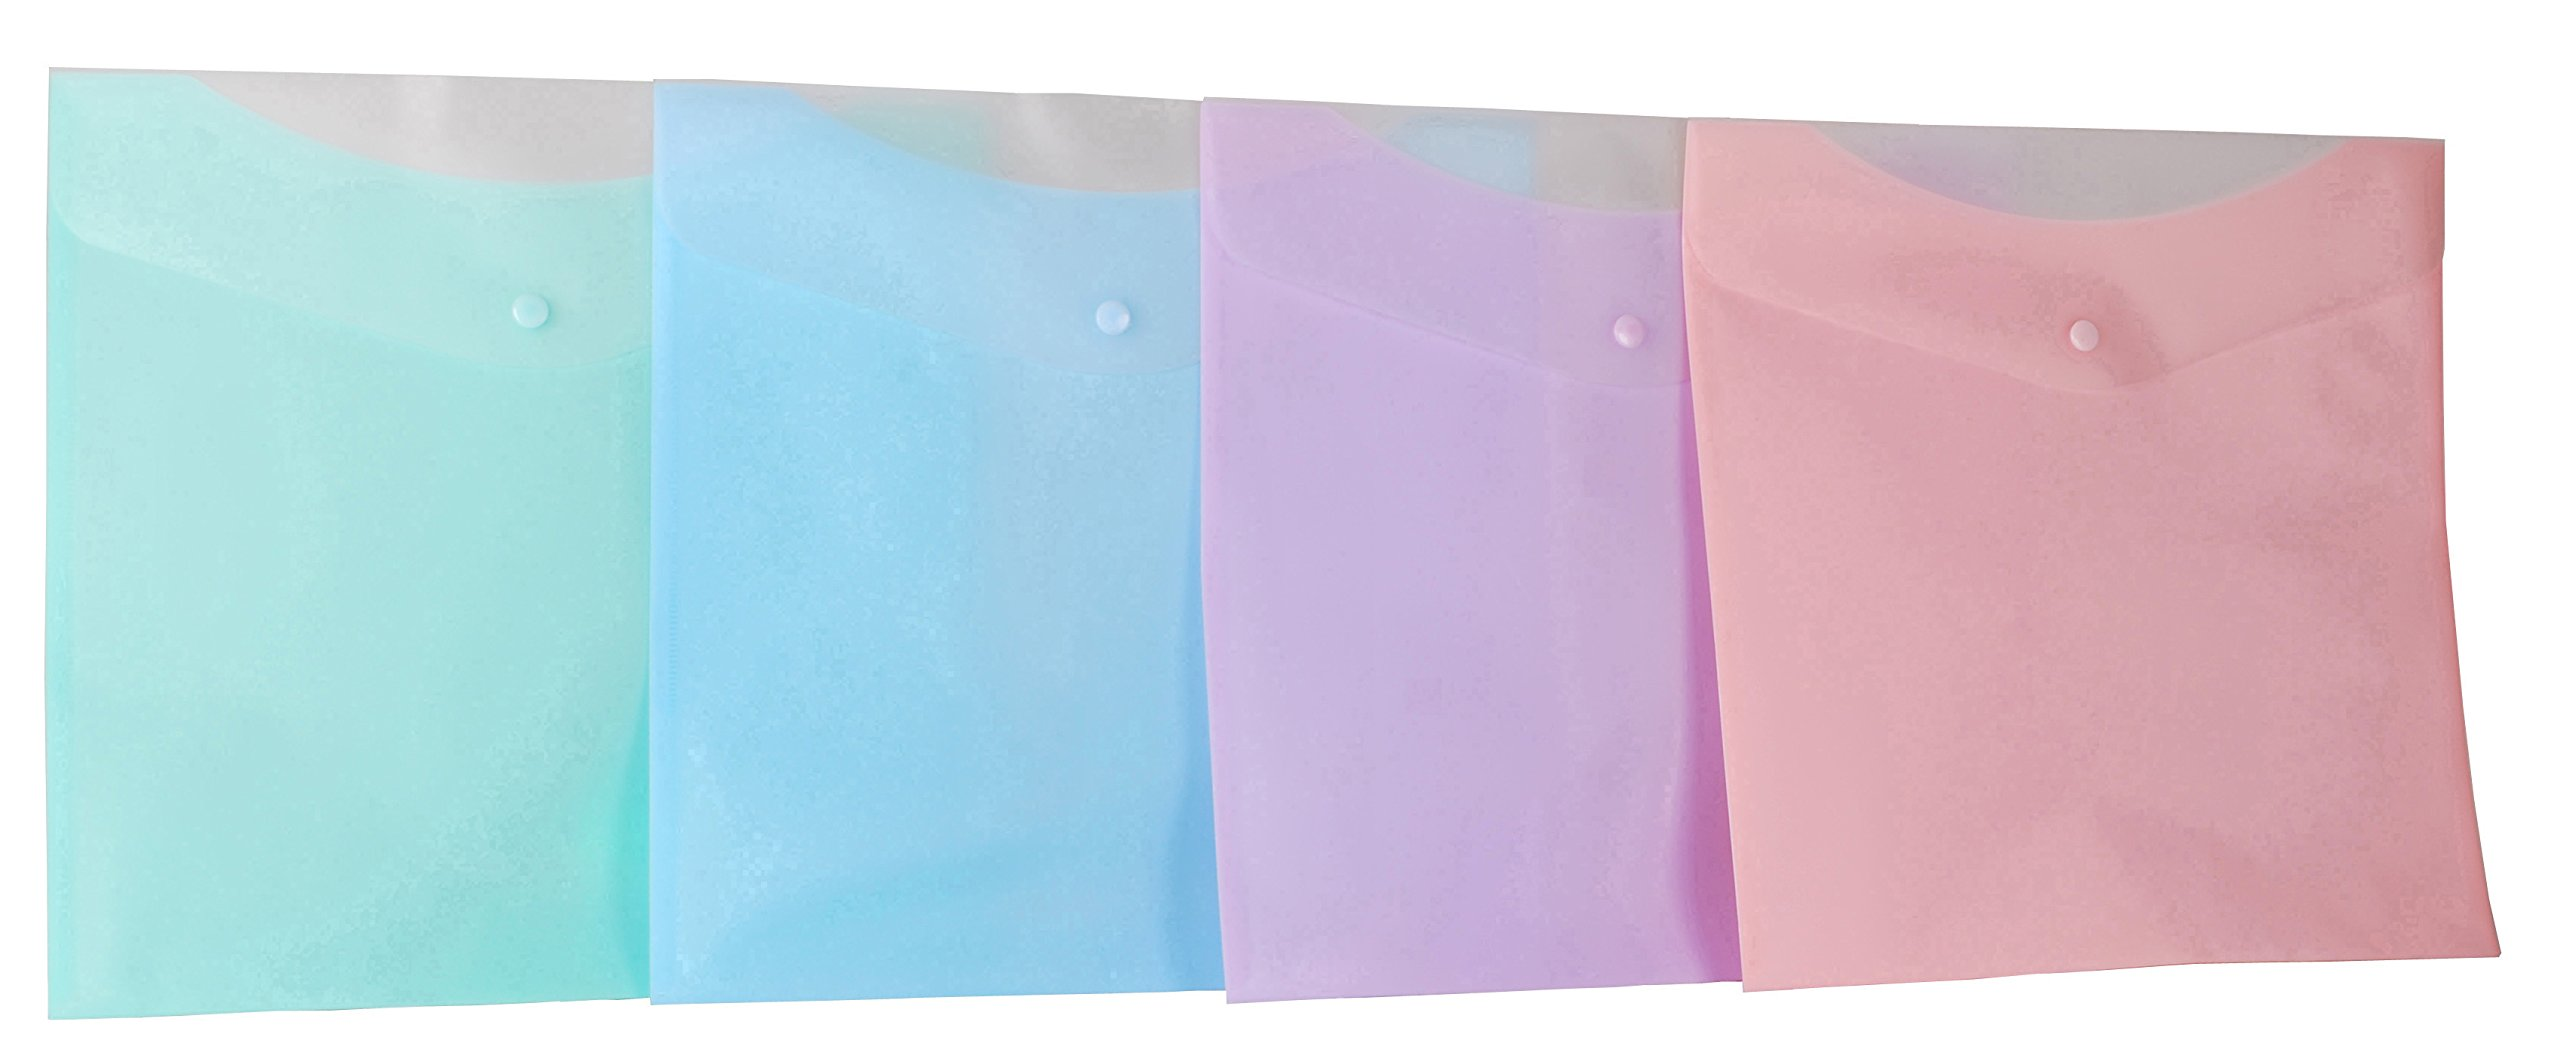 Filexec Products Lite Classic 2x2 Craft Envelope, Polypropylene, 13 x 13 Inches, Assorted Colors, Pack of 12 (50398-4004)